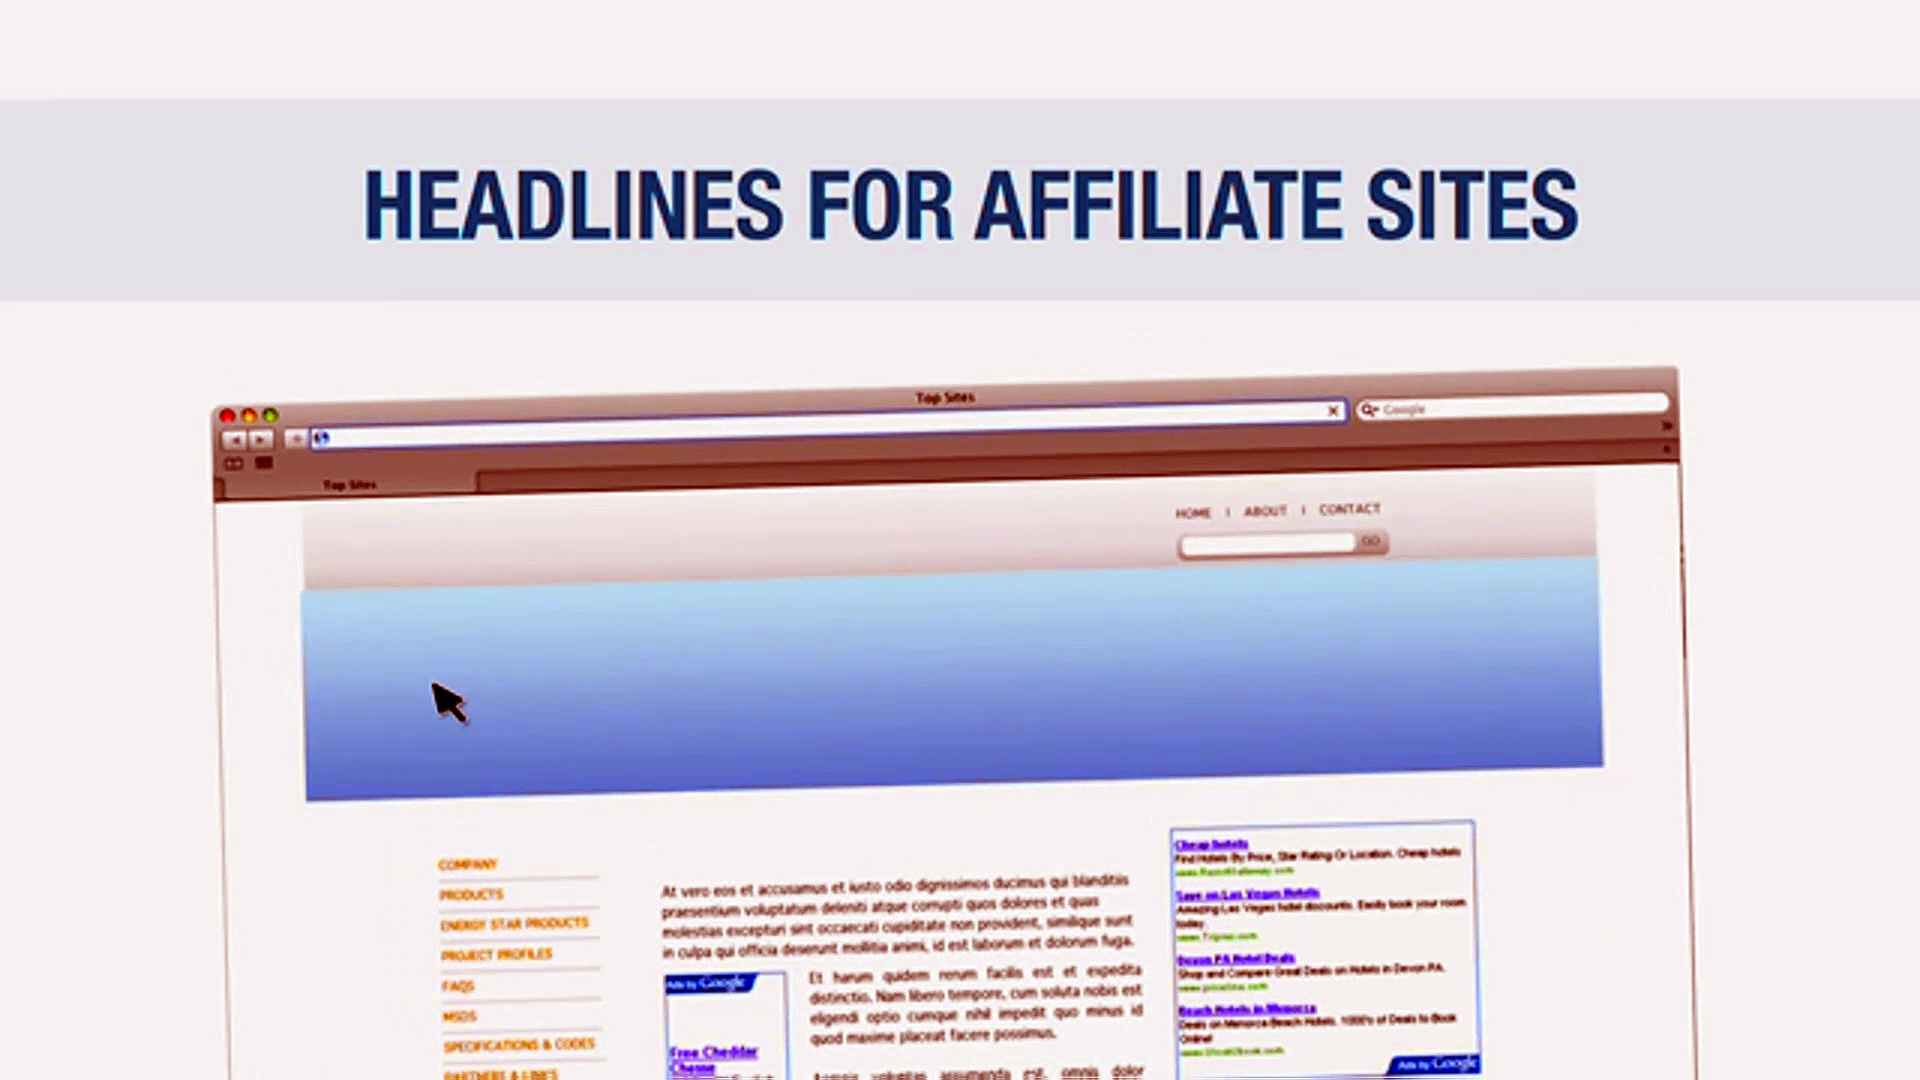 Affiliate Marketing For Beginners 18 | Clickbank | Headlines for Affiliate Sites